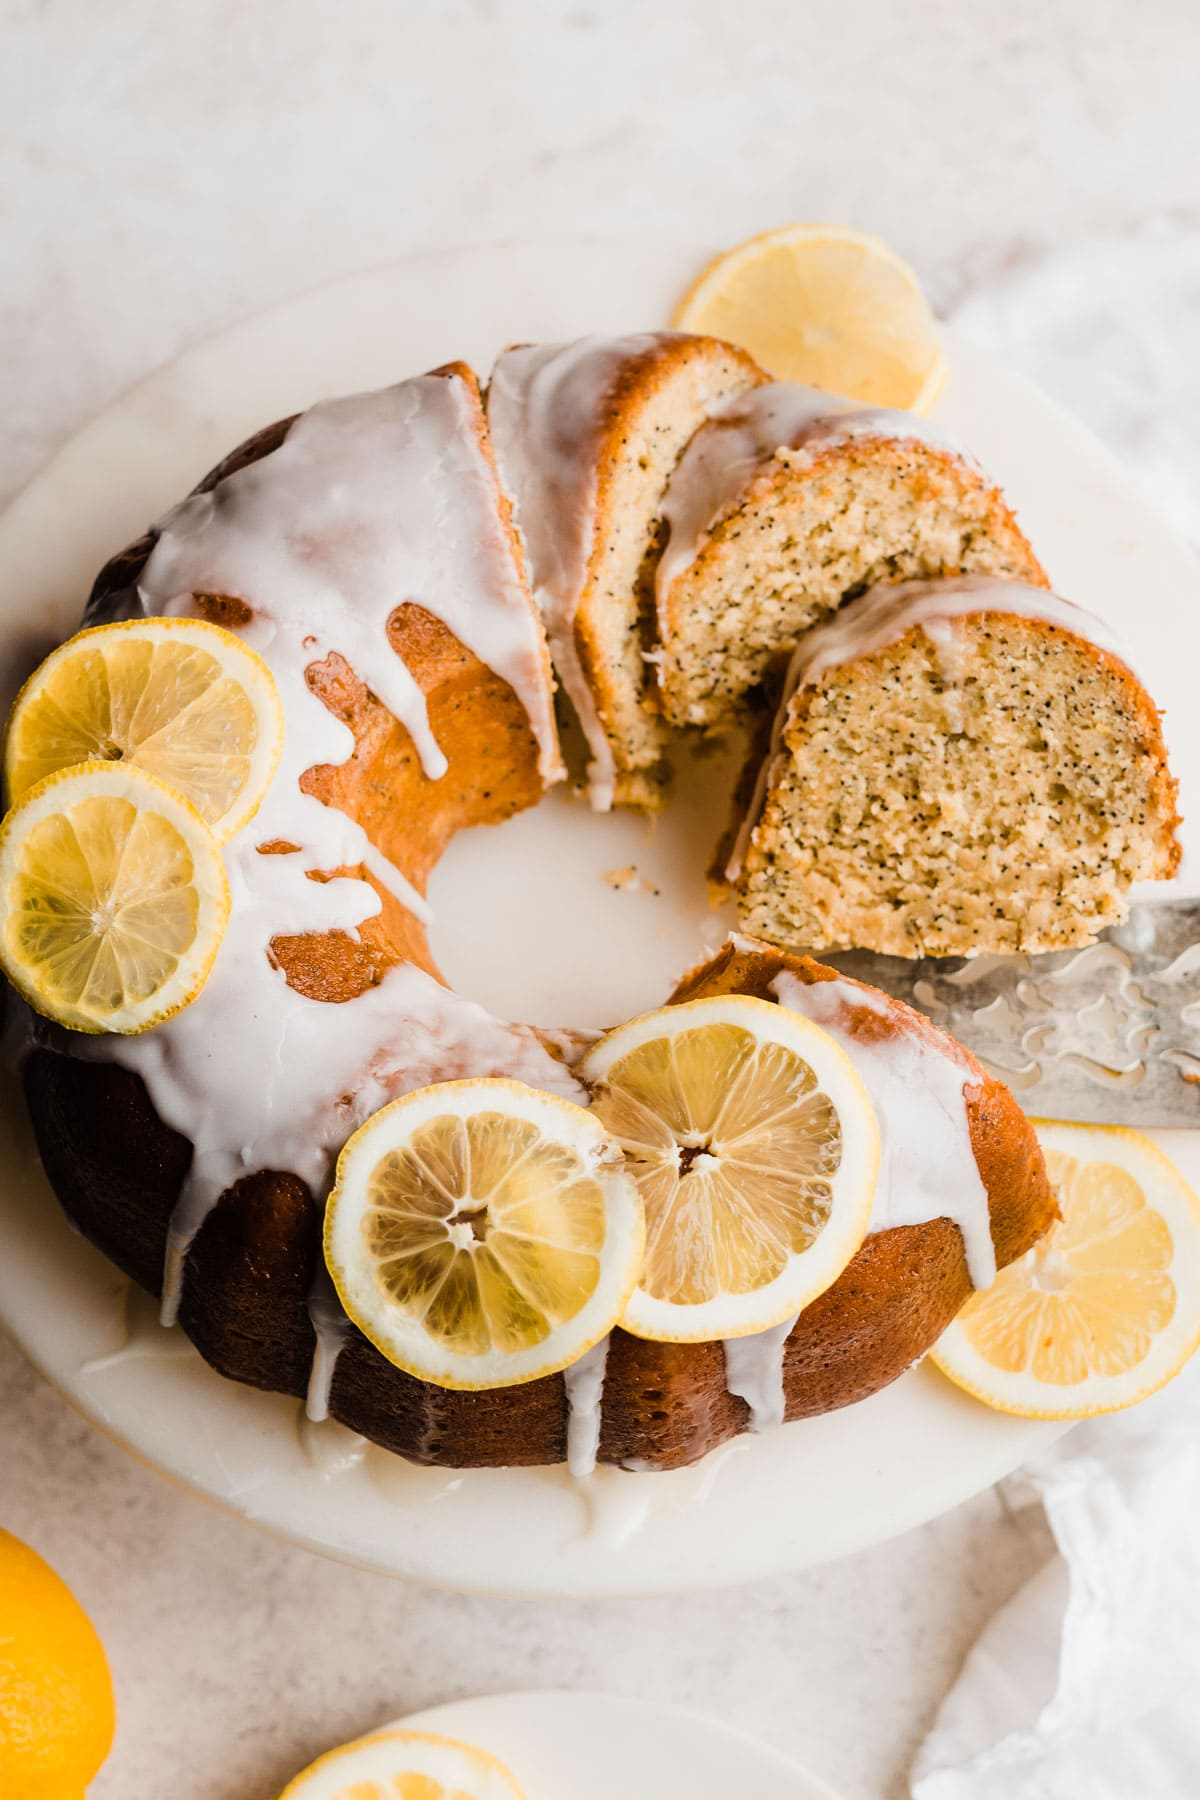 Fluffy Lemon Poppy Seed Cake with Lemon Glaze